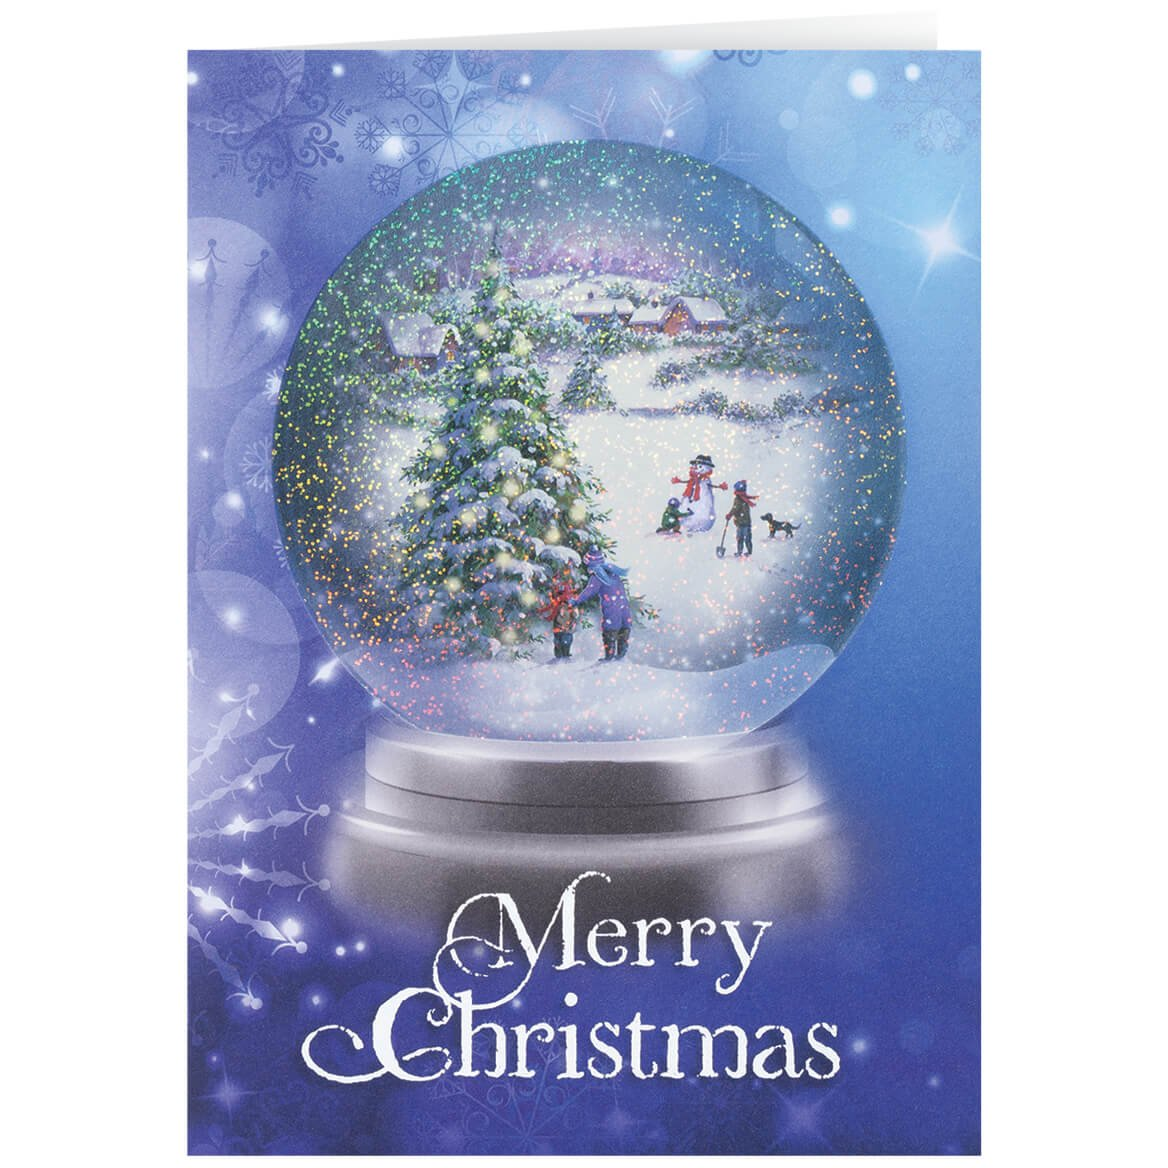 Amazon.com: Personalized Winter Snowglobe Christmas Card Set of 20 ...